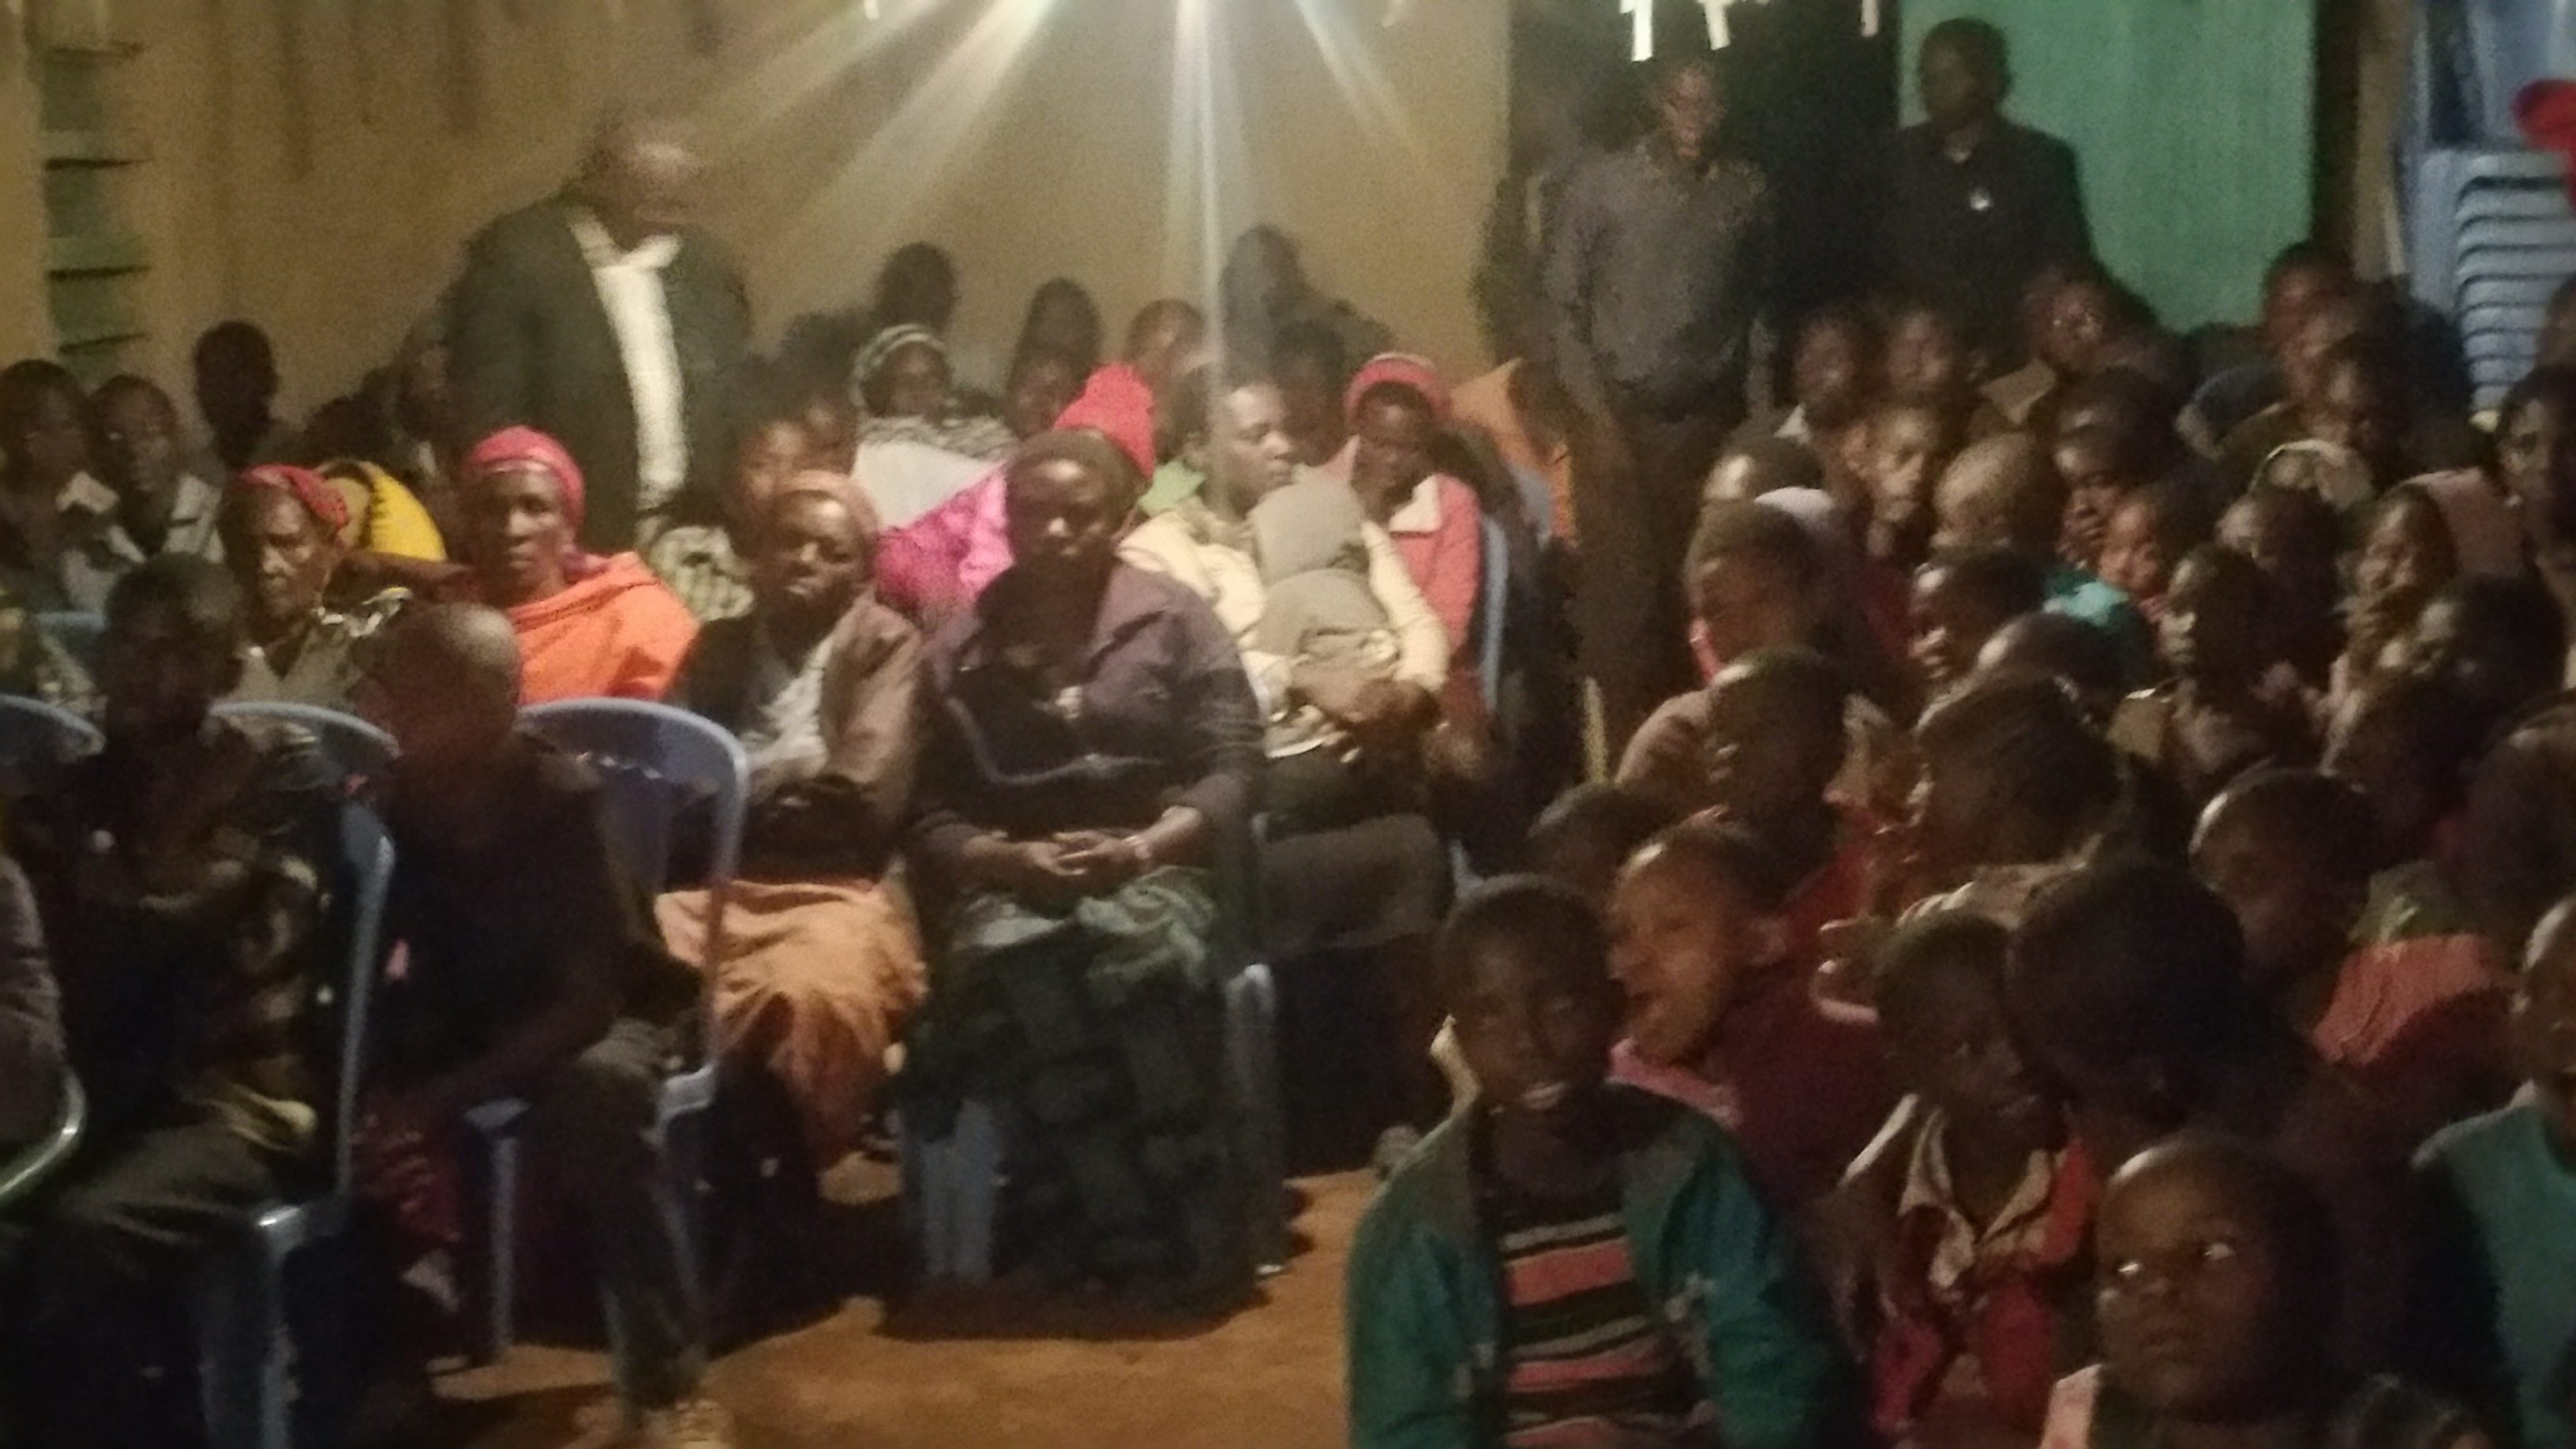 Seventh day baptist missionary society blog archive kenya on behalf of my wife family and the entire kenyan church family of sdb i am sending special greetings and thanks towards those who all gave support kristyandbryce Image collections